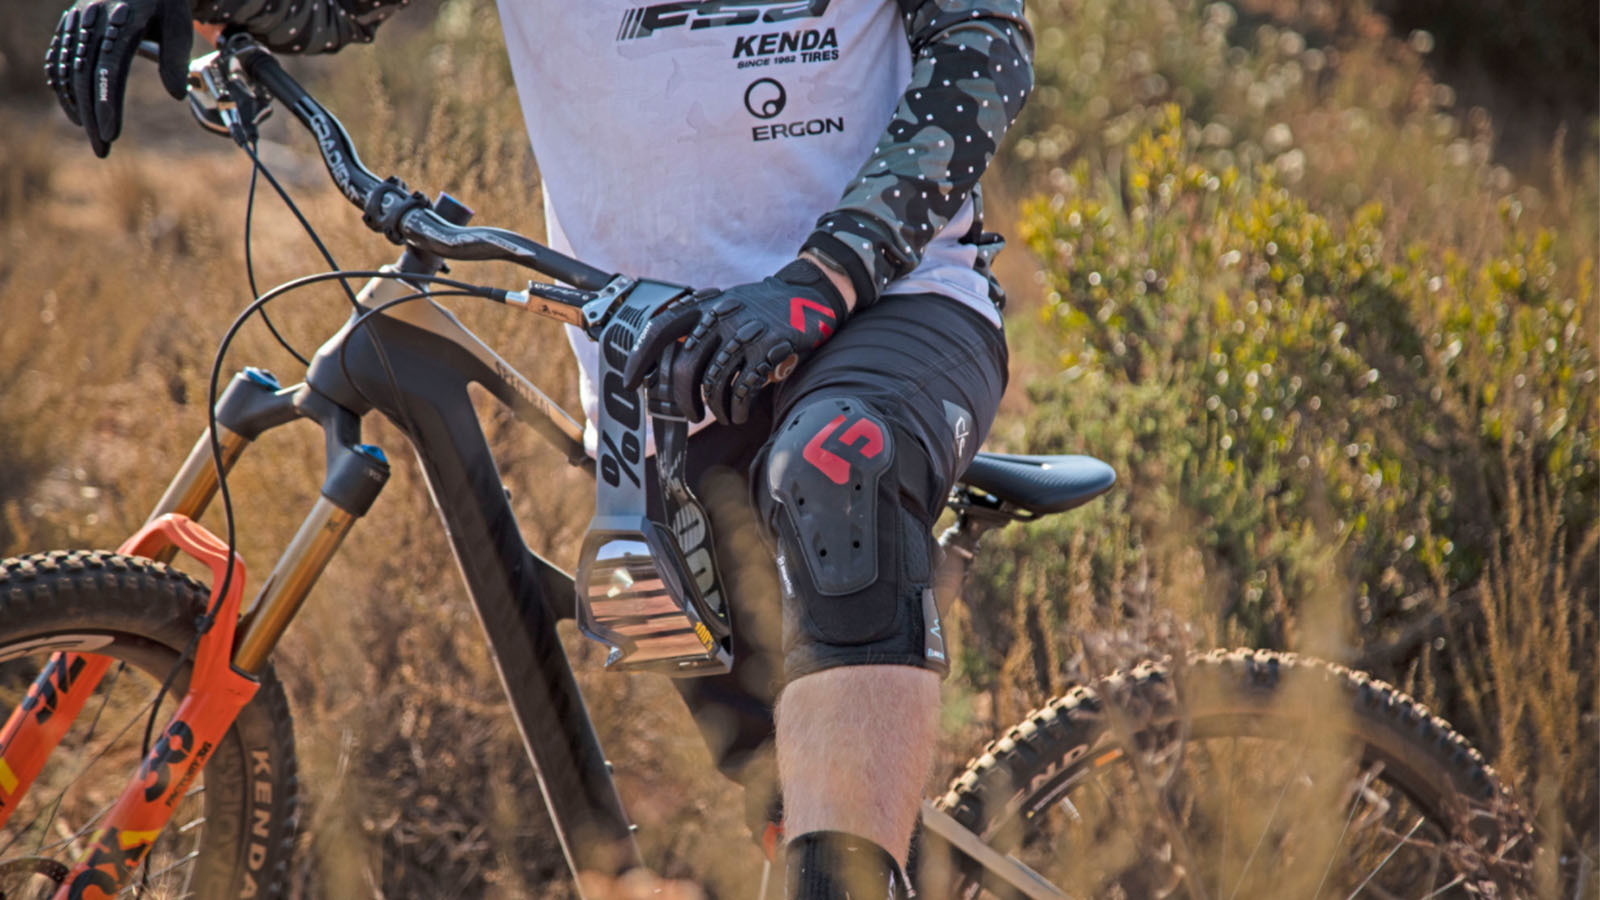 Maximum Comfort, Breathability, and Protection - G-Form's All-New E-Line Pads